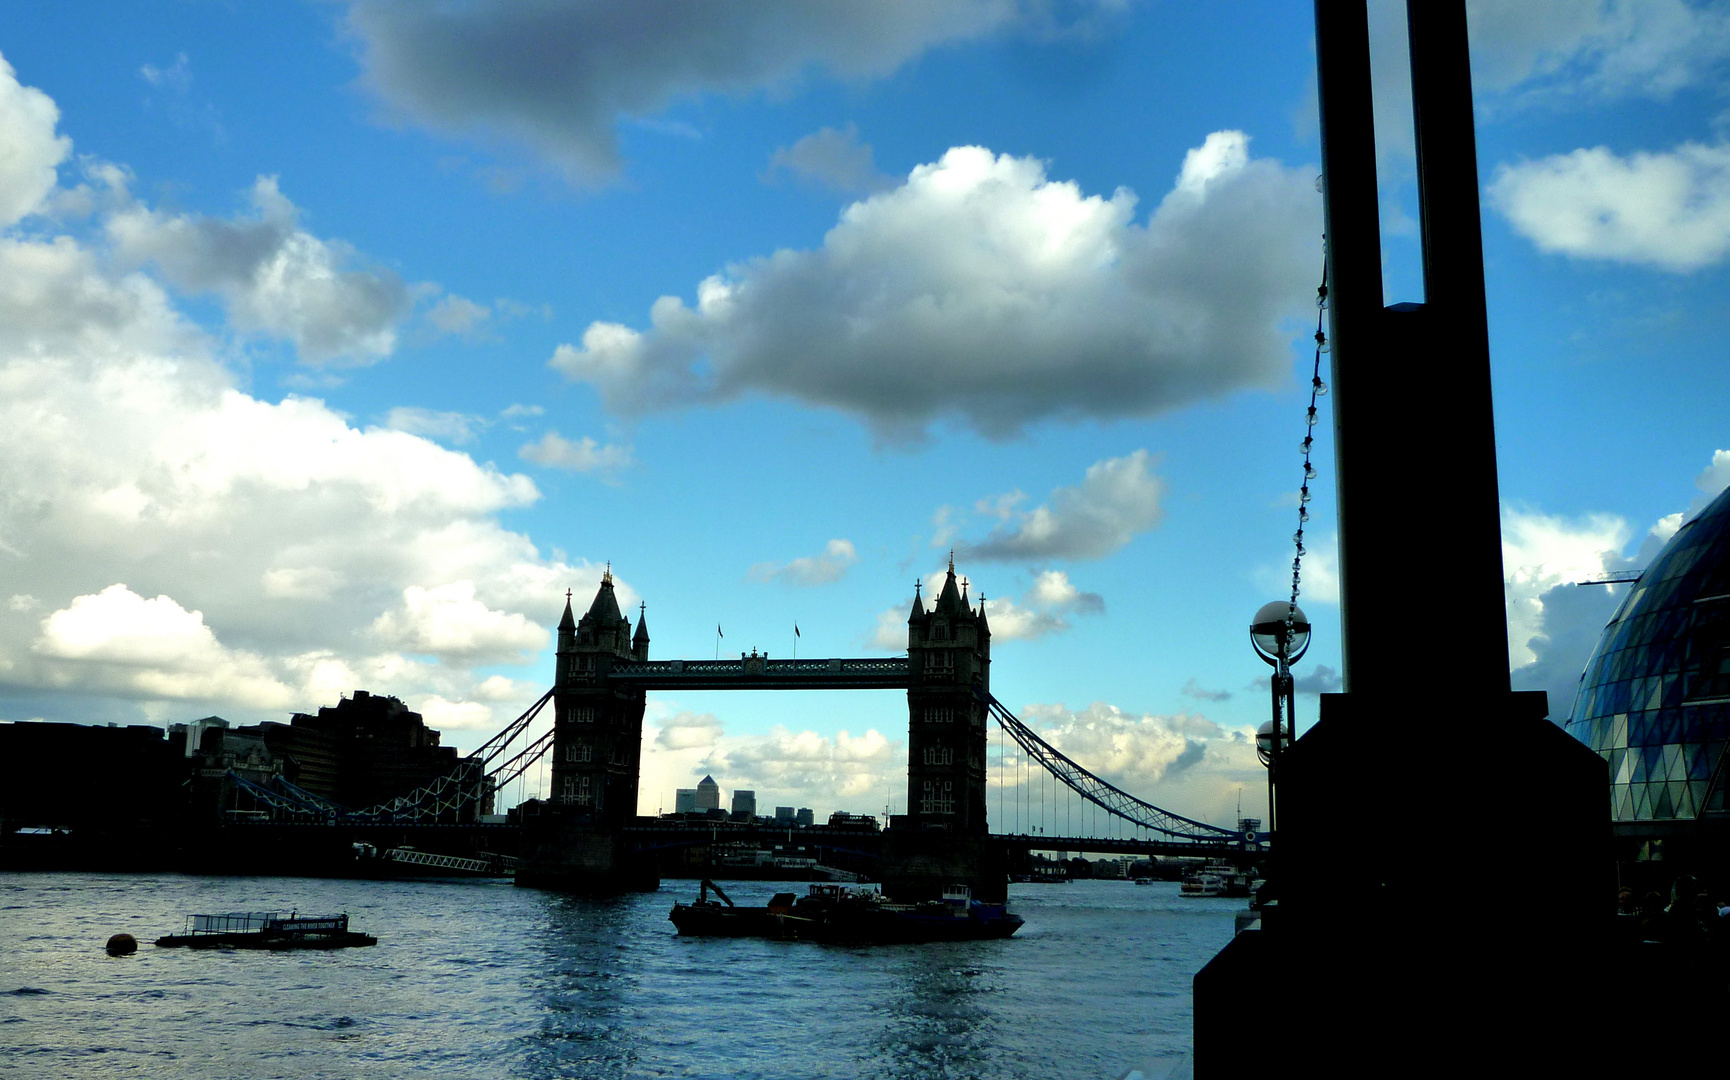 The Tower Bridge........